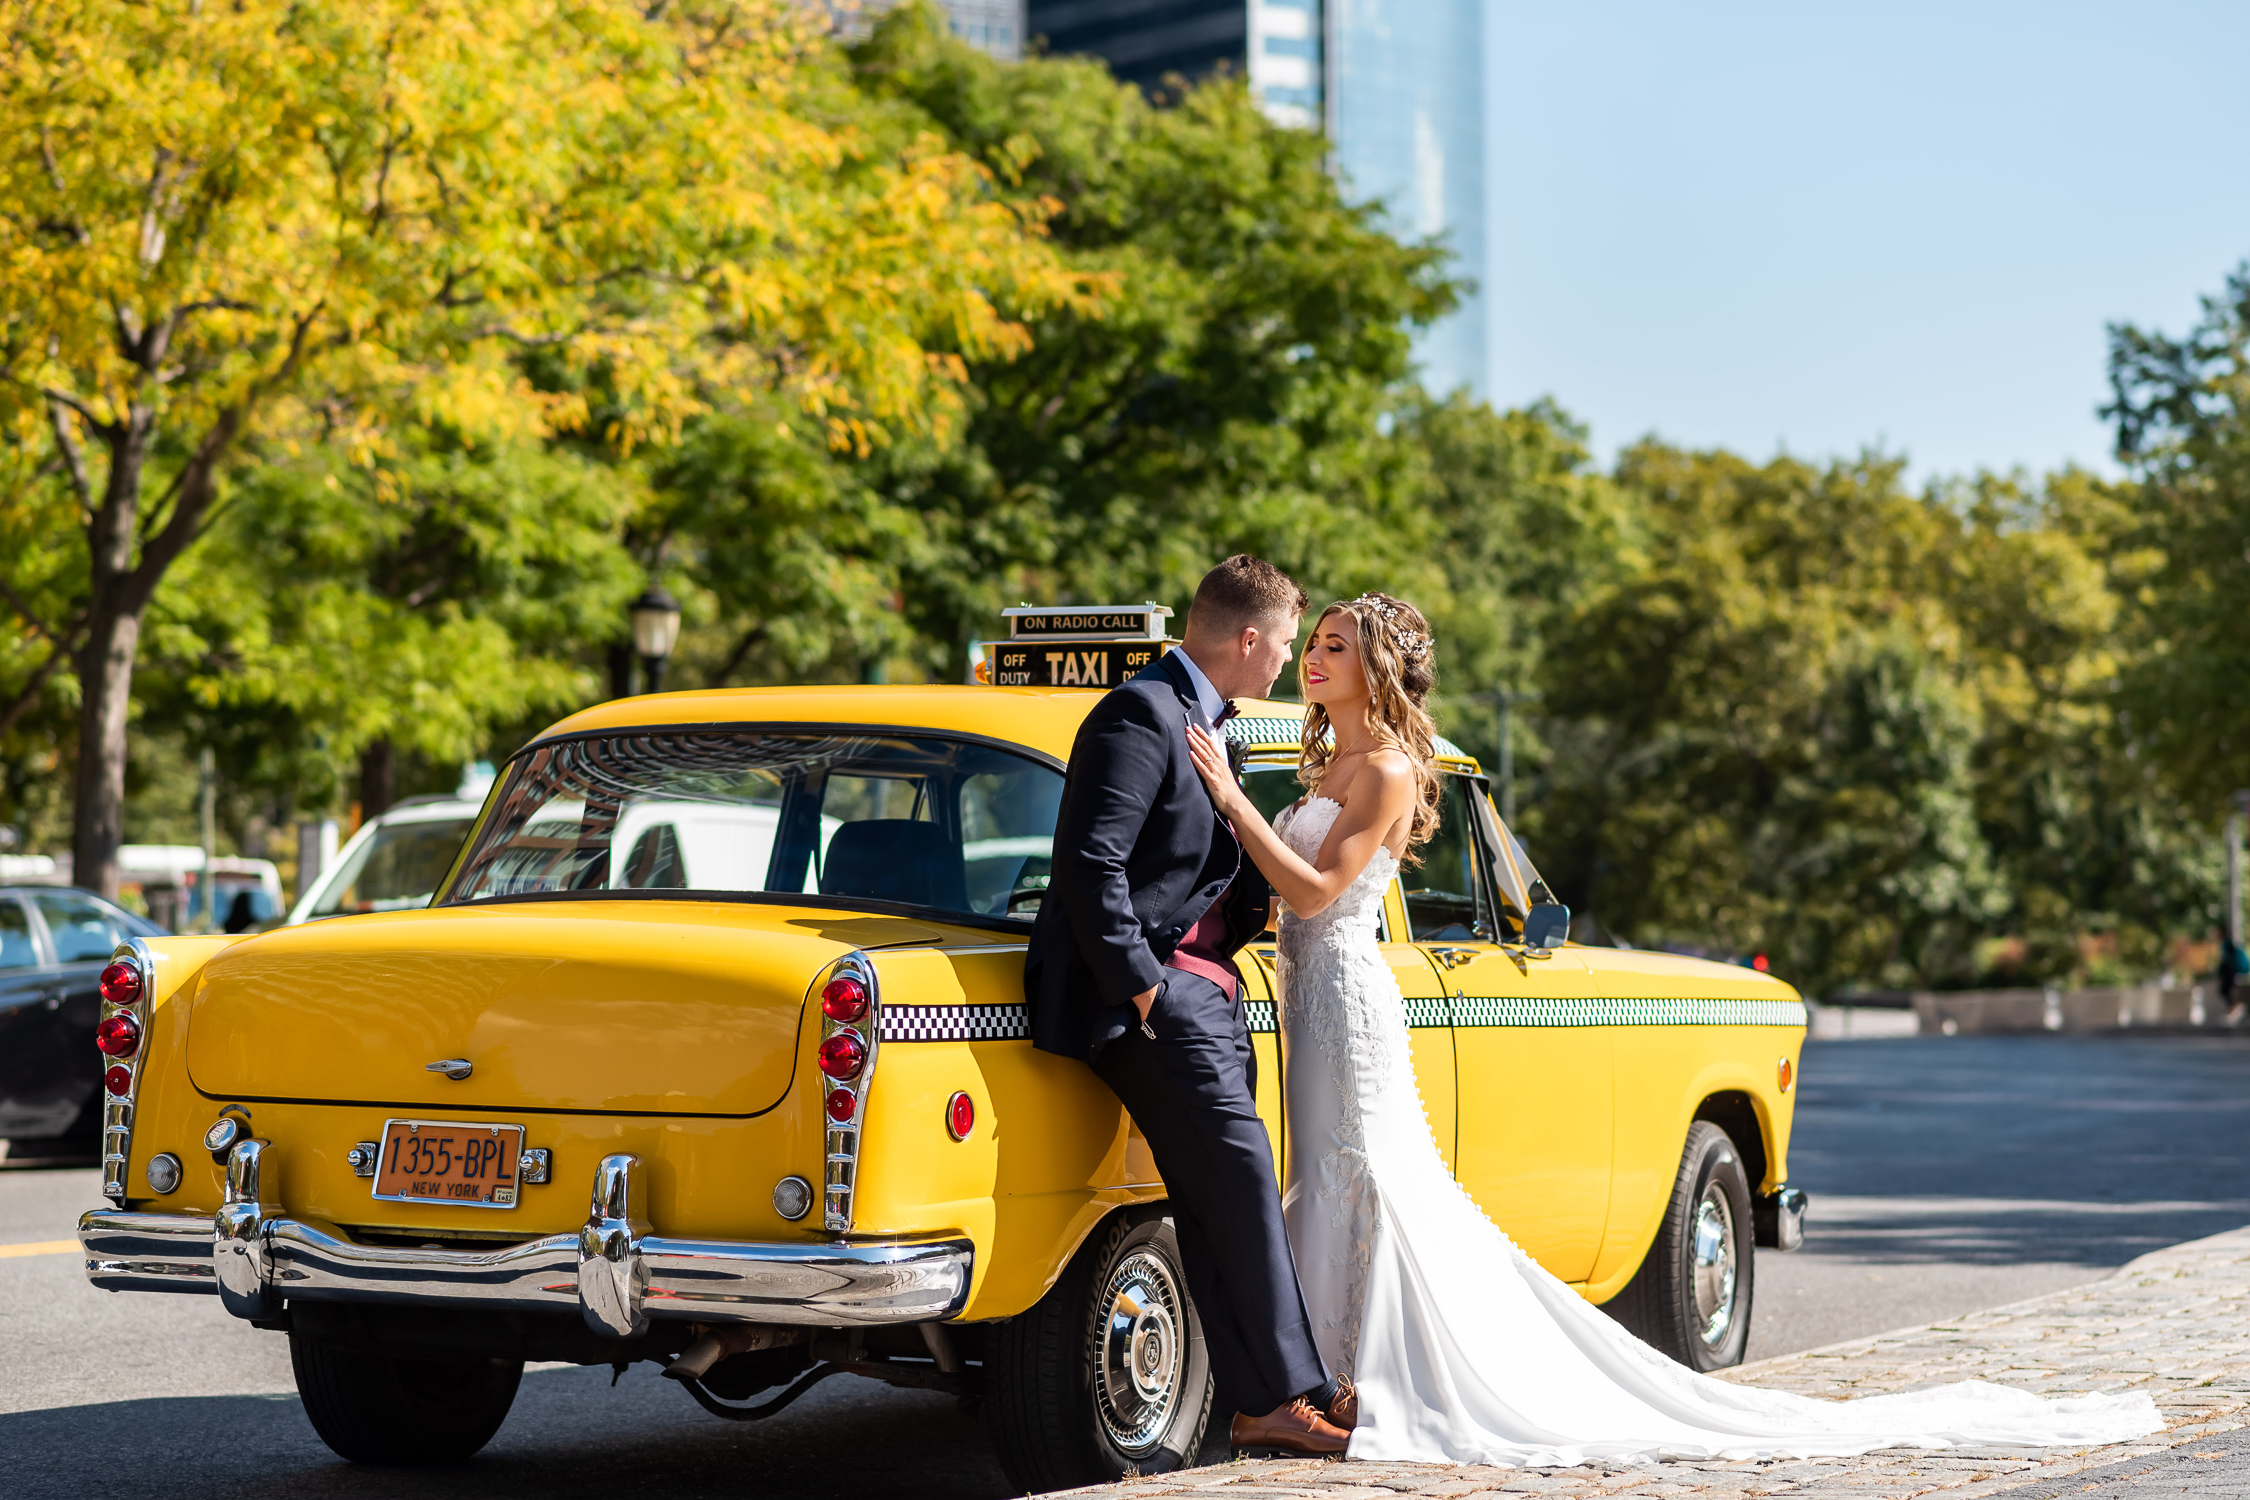 Emma_Cleary_Photo_and_Video_wedding_photos_0018